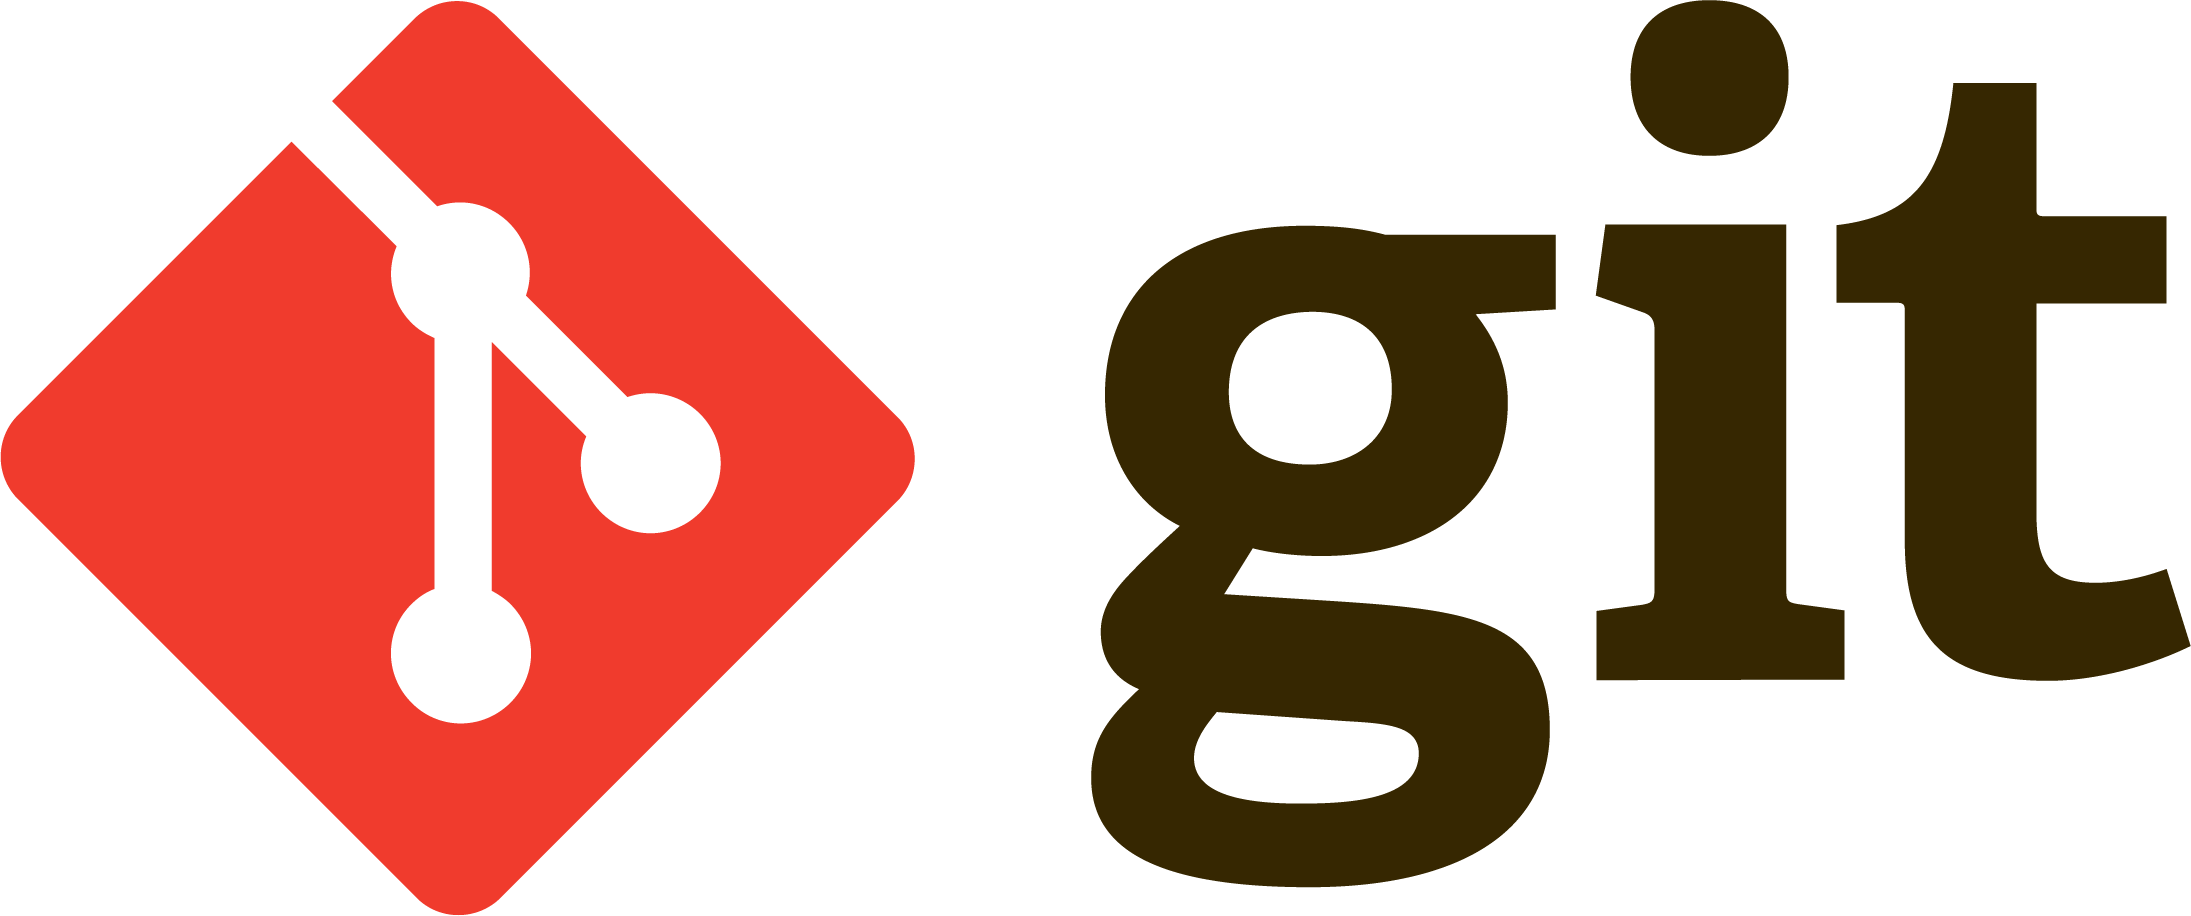 Git Logo (software) png